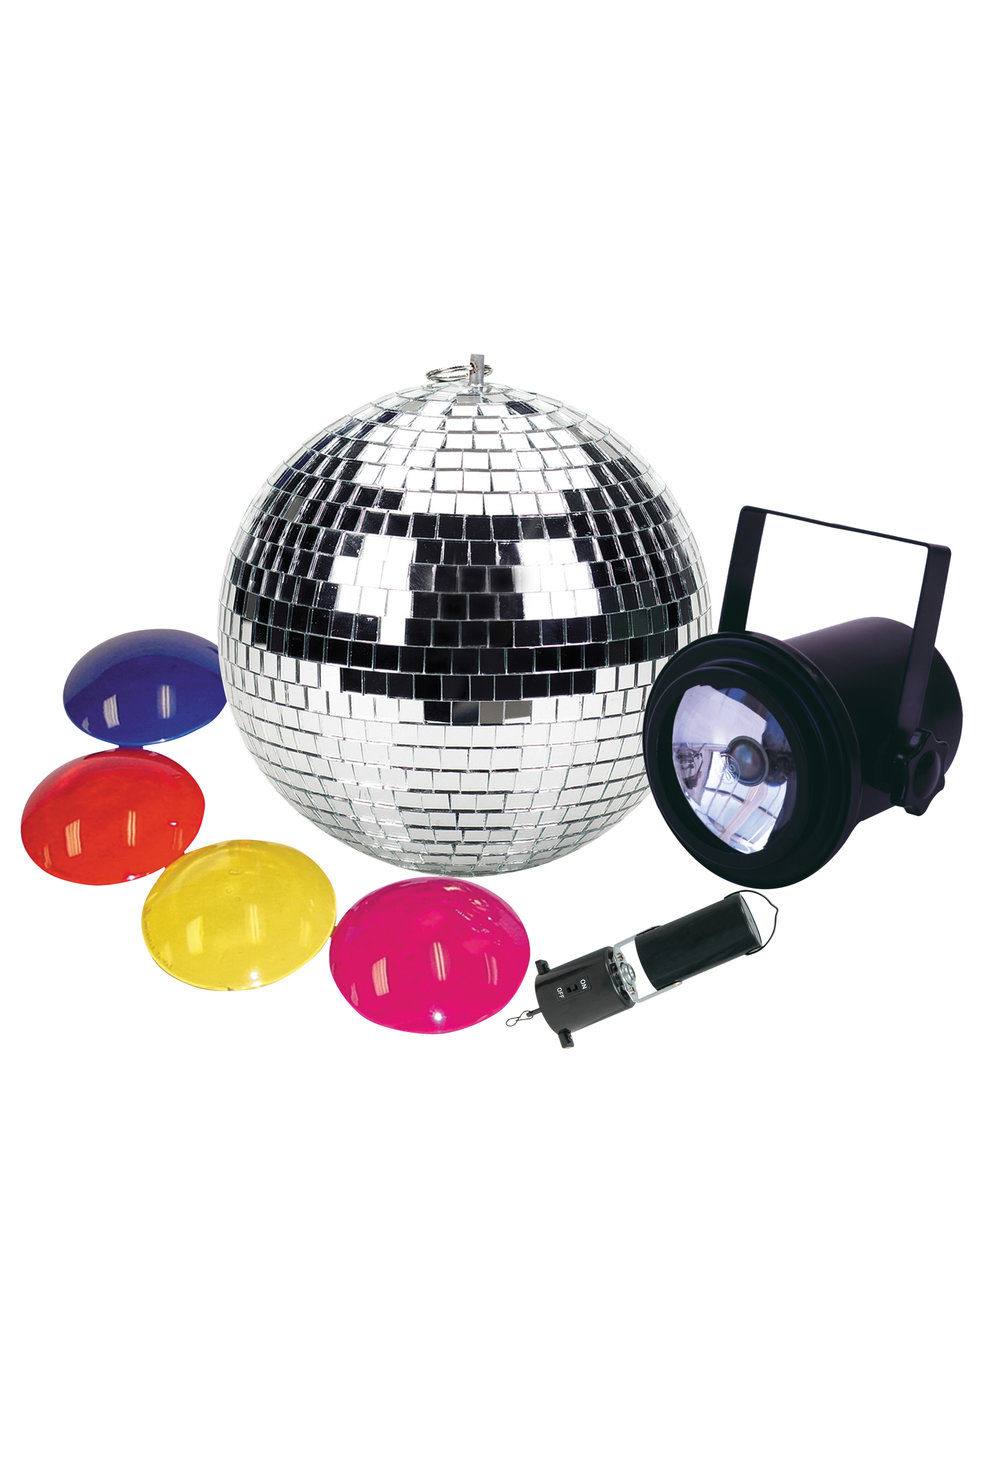 MBK1  MIRROR BALL PARTY KIT